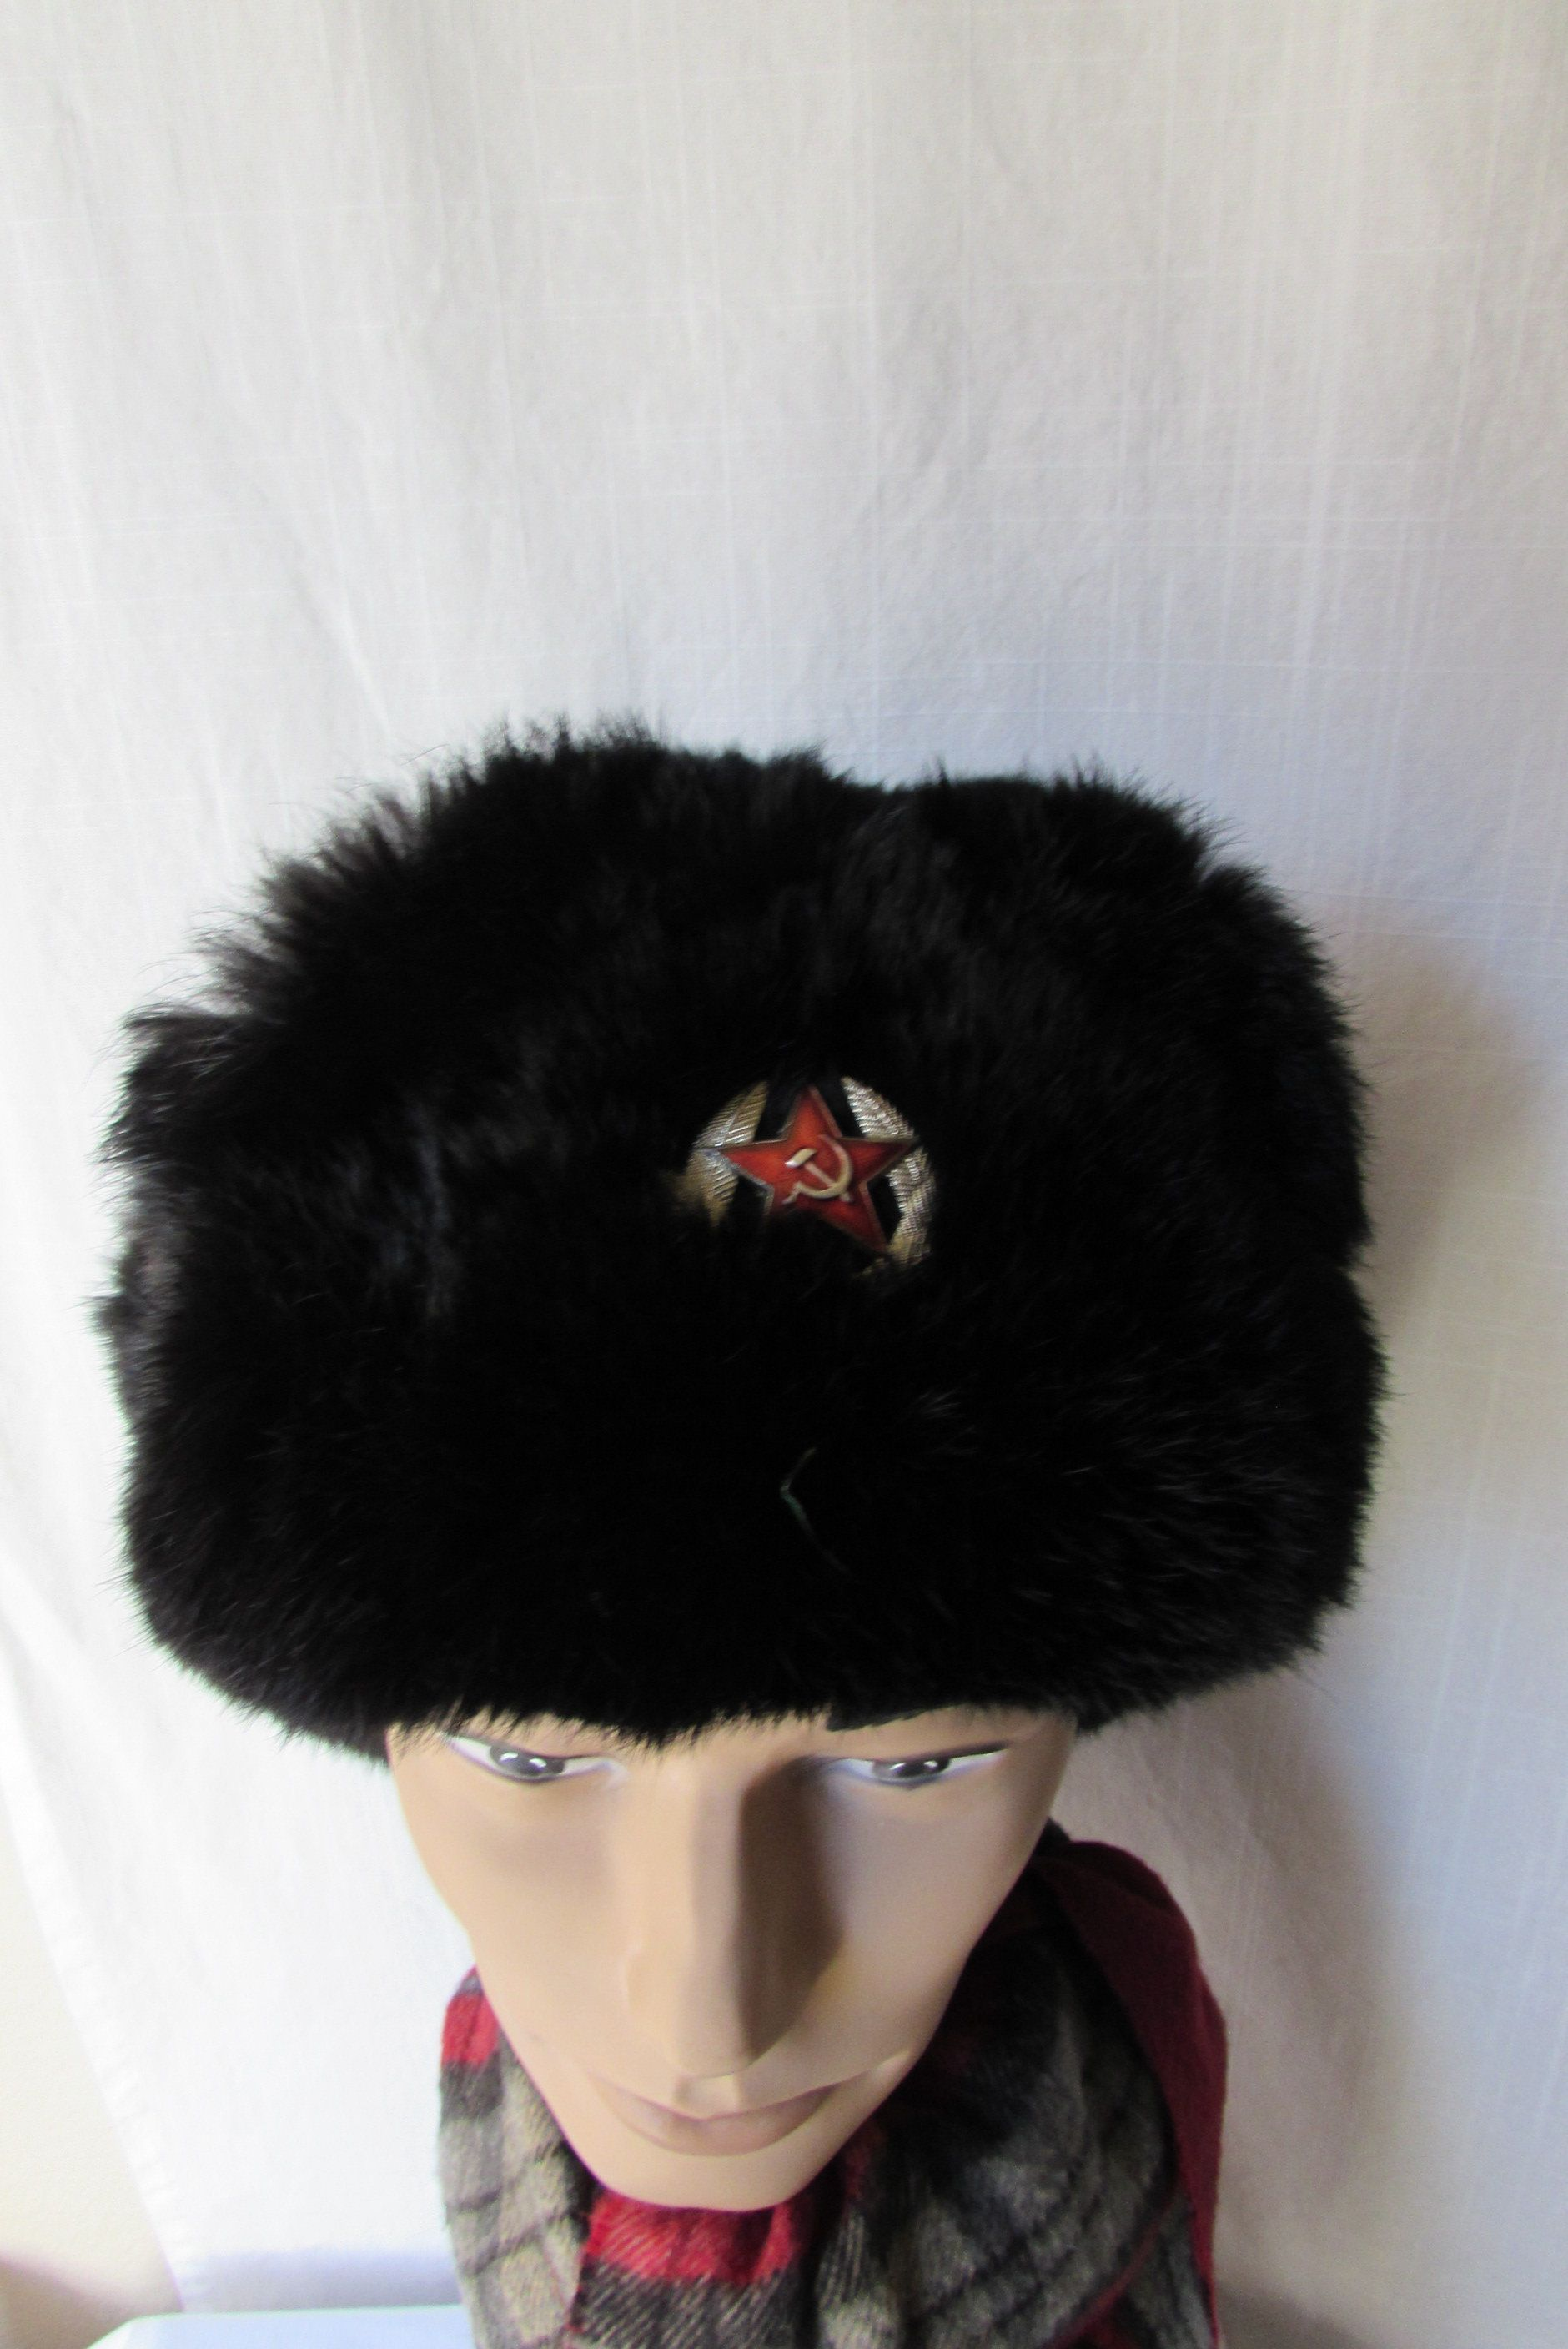 NEW HAT WITH RED STARS RUSSIAN SOVIET BLACK WINTER SOLDIER ARMY HAT USHANKA